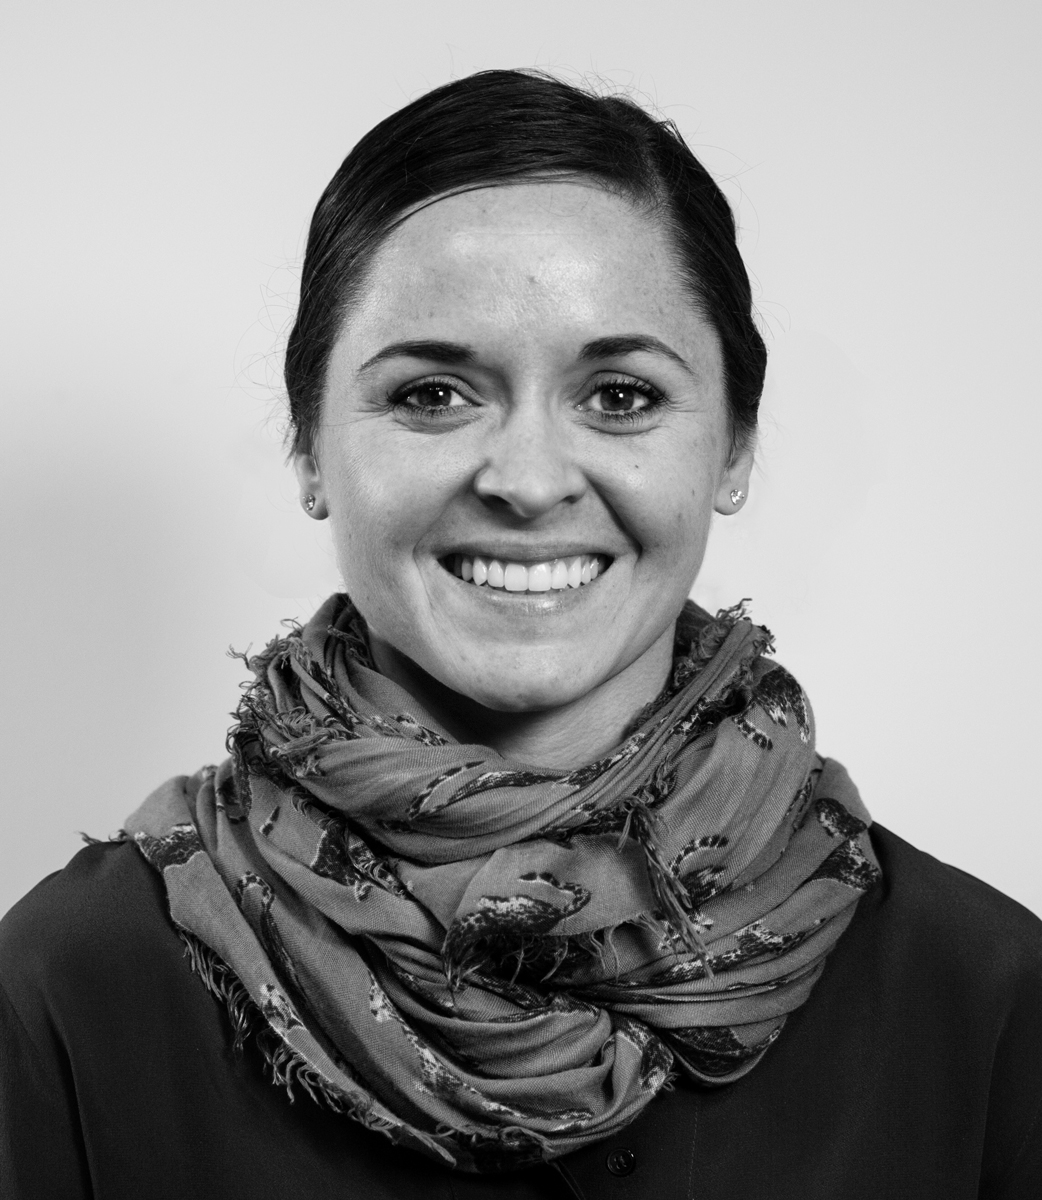 HY Connect Welcomes Kat McCourt as Strategic Planner